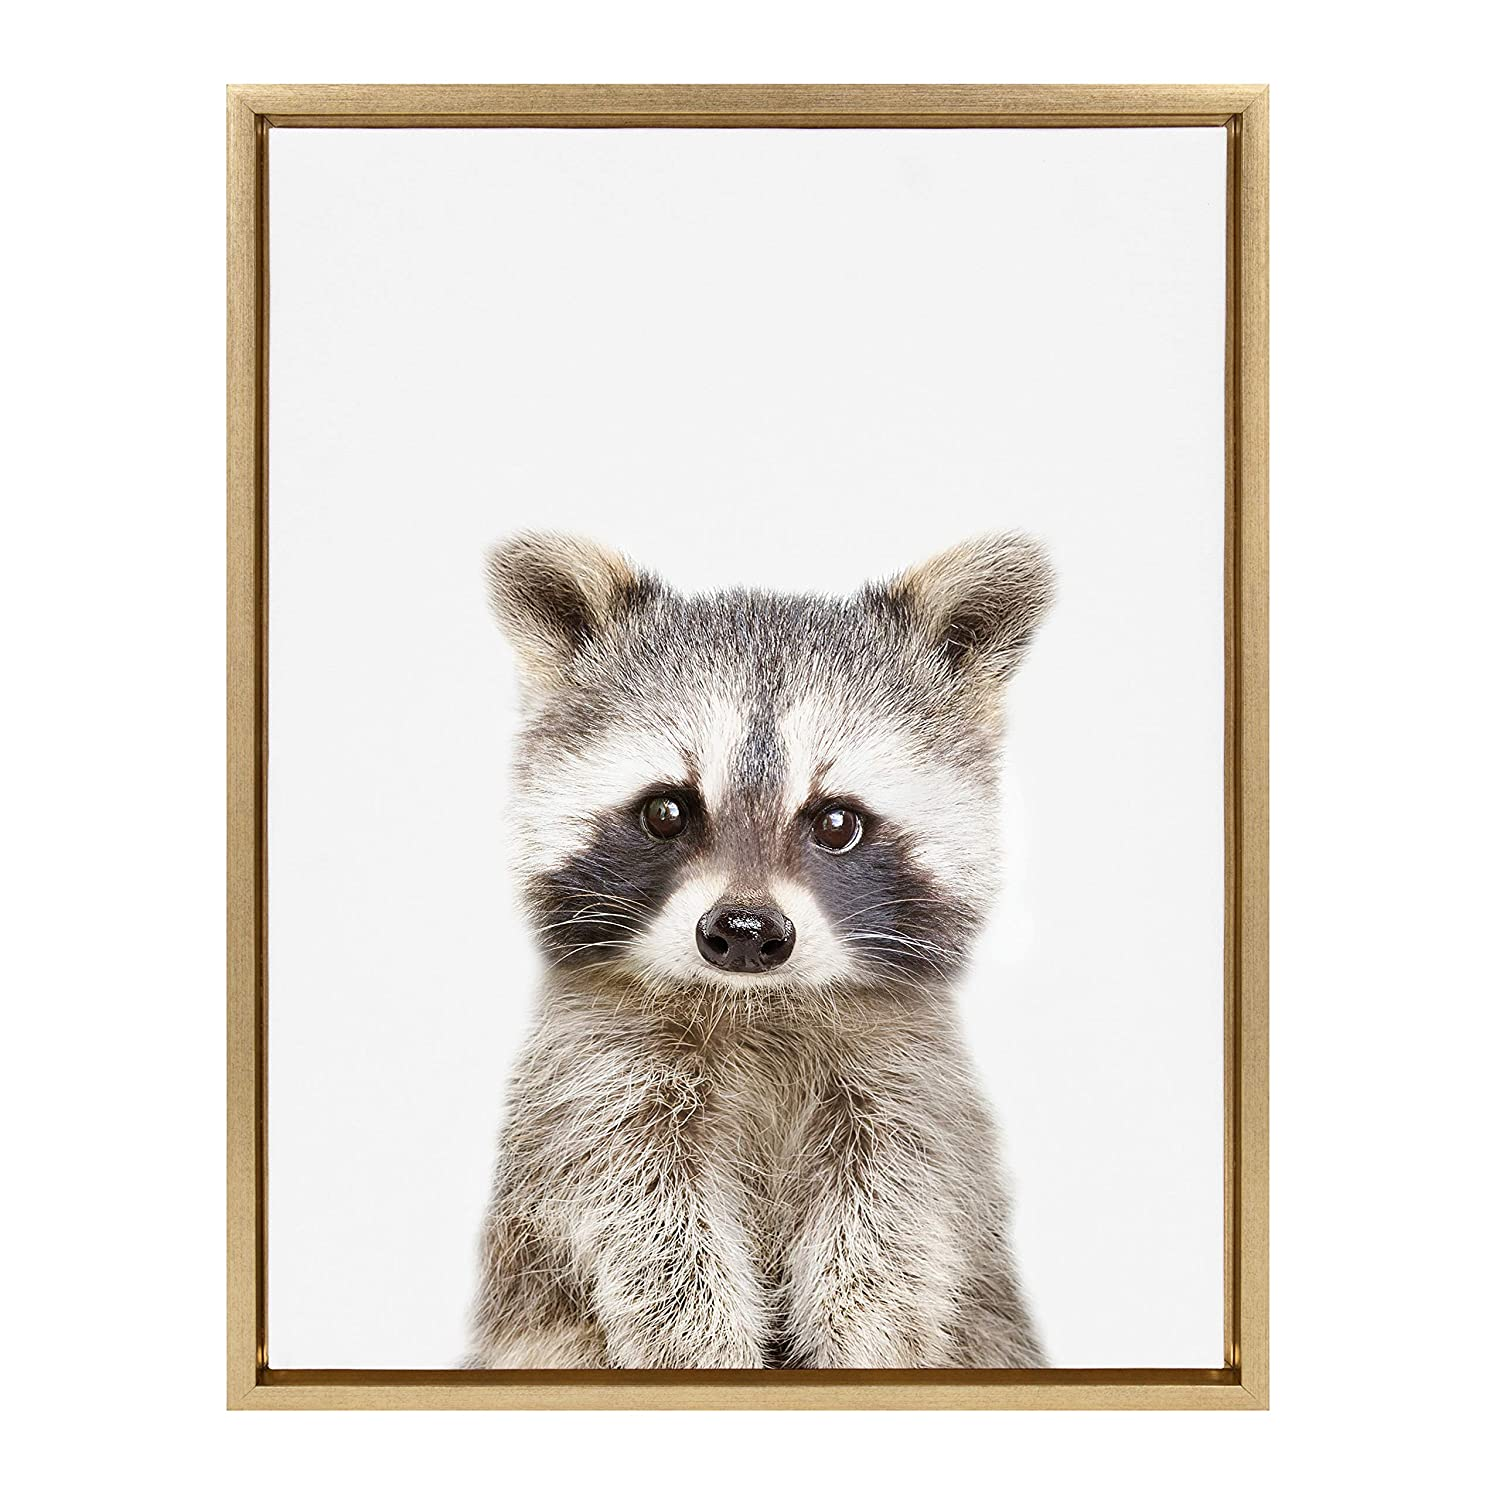 Kate and Laurel Sylvie Raccoon Portrait Framed Canvas Wall Art by Amy Peterson, 18x24 Gold, Adorable Animal Home Decor